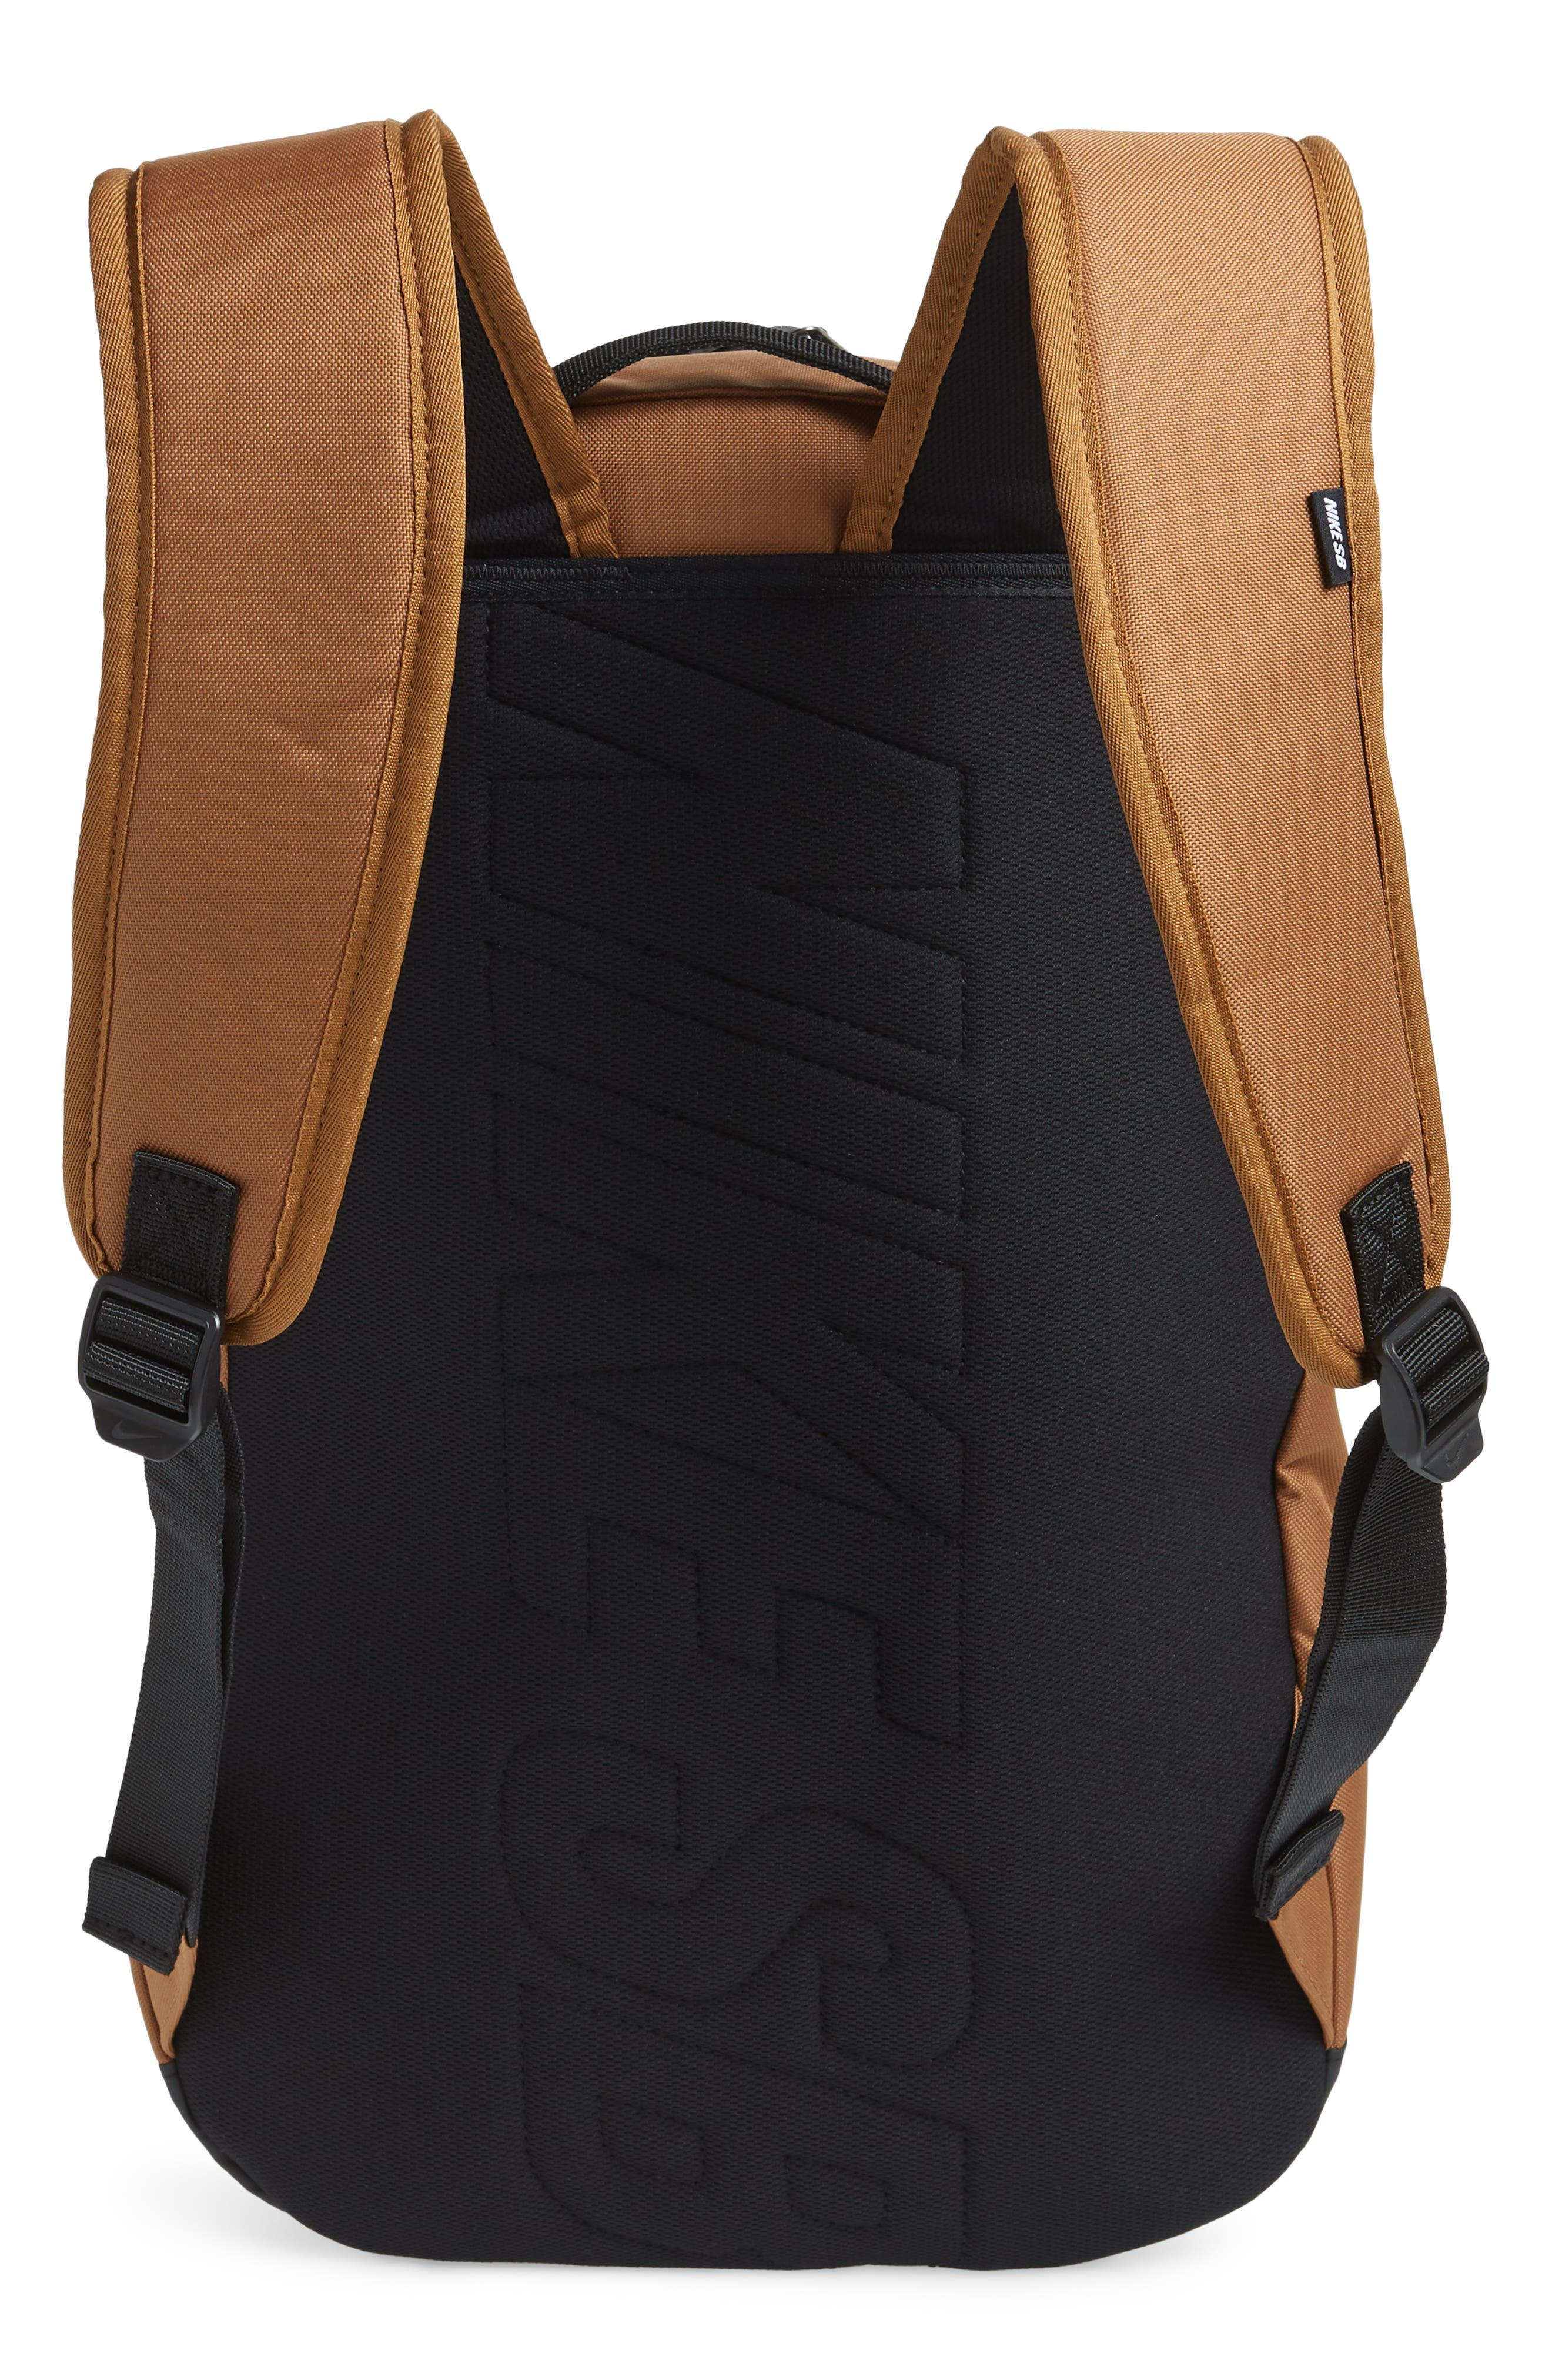 Courthouse Backpack,                             Alternate thumbnail 3, color,                             ALE BROWN